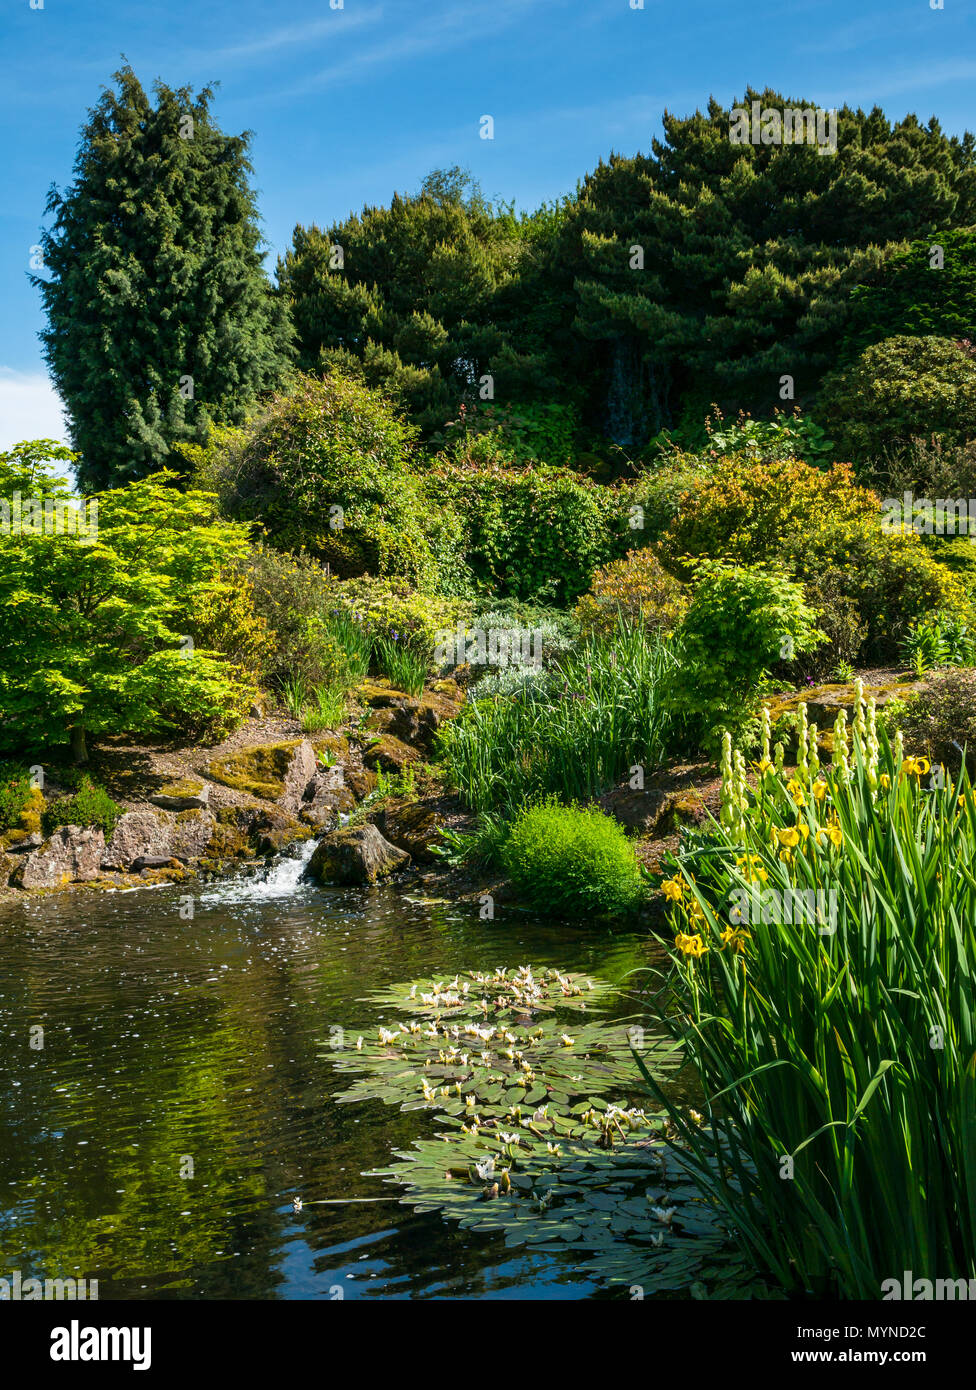 The rock garden on sunny day with blue sky, Royal Botanic garden, Edinburgh, Scotland, UK - Stock Image